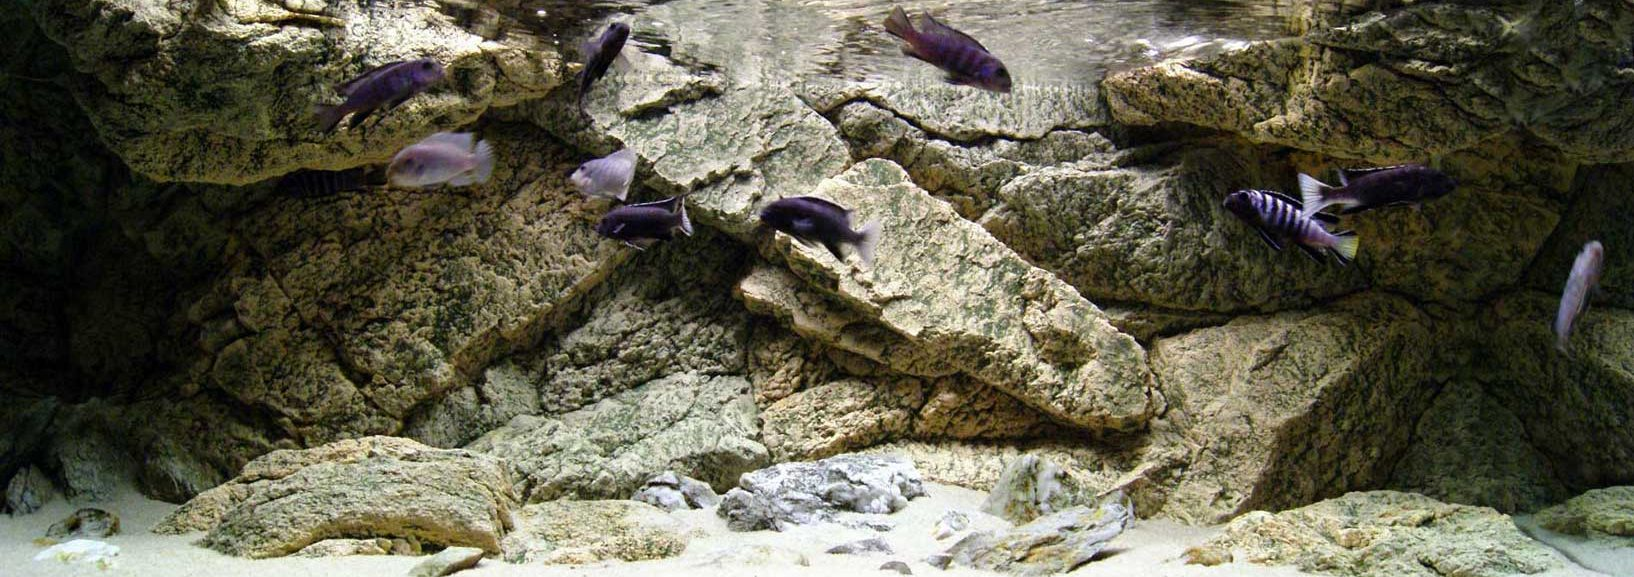 Rocky 3D aquarium backgrounds